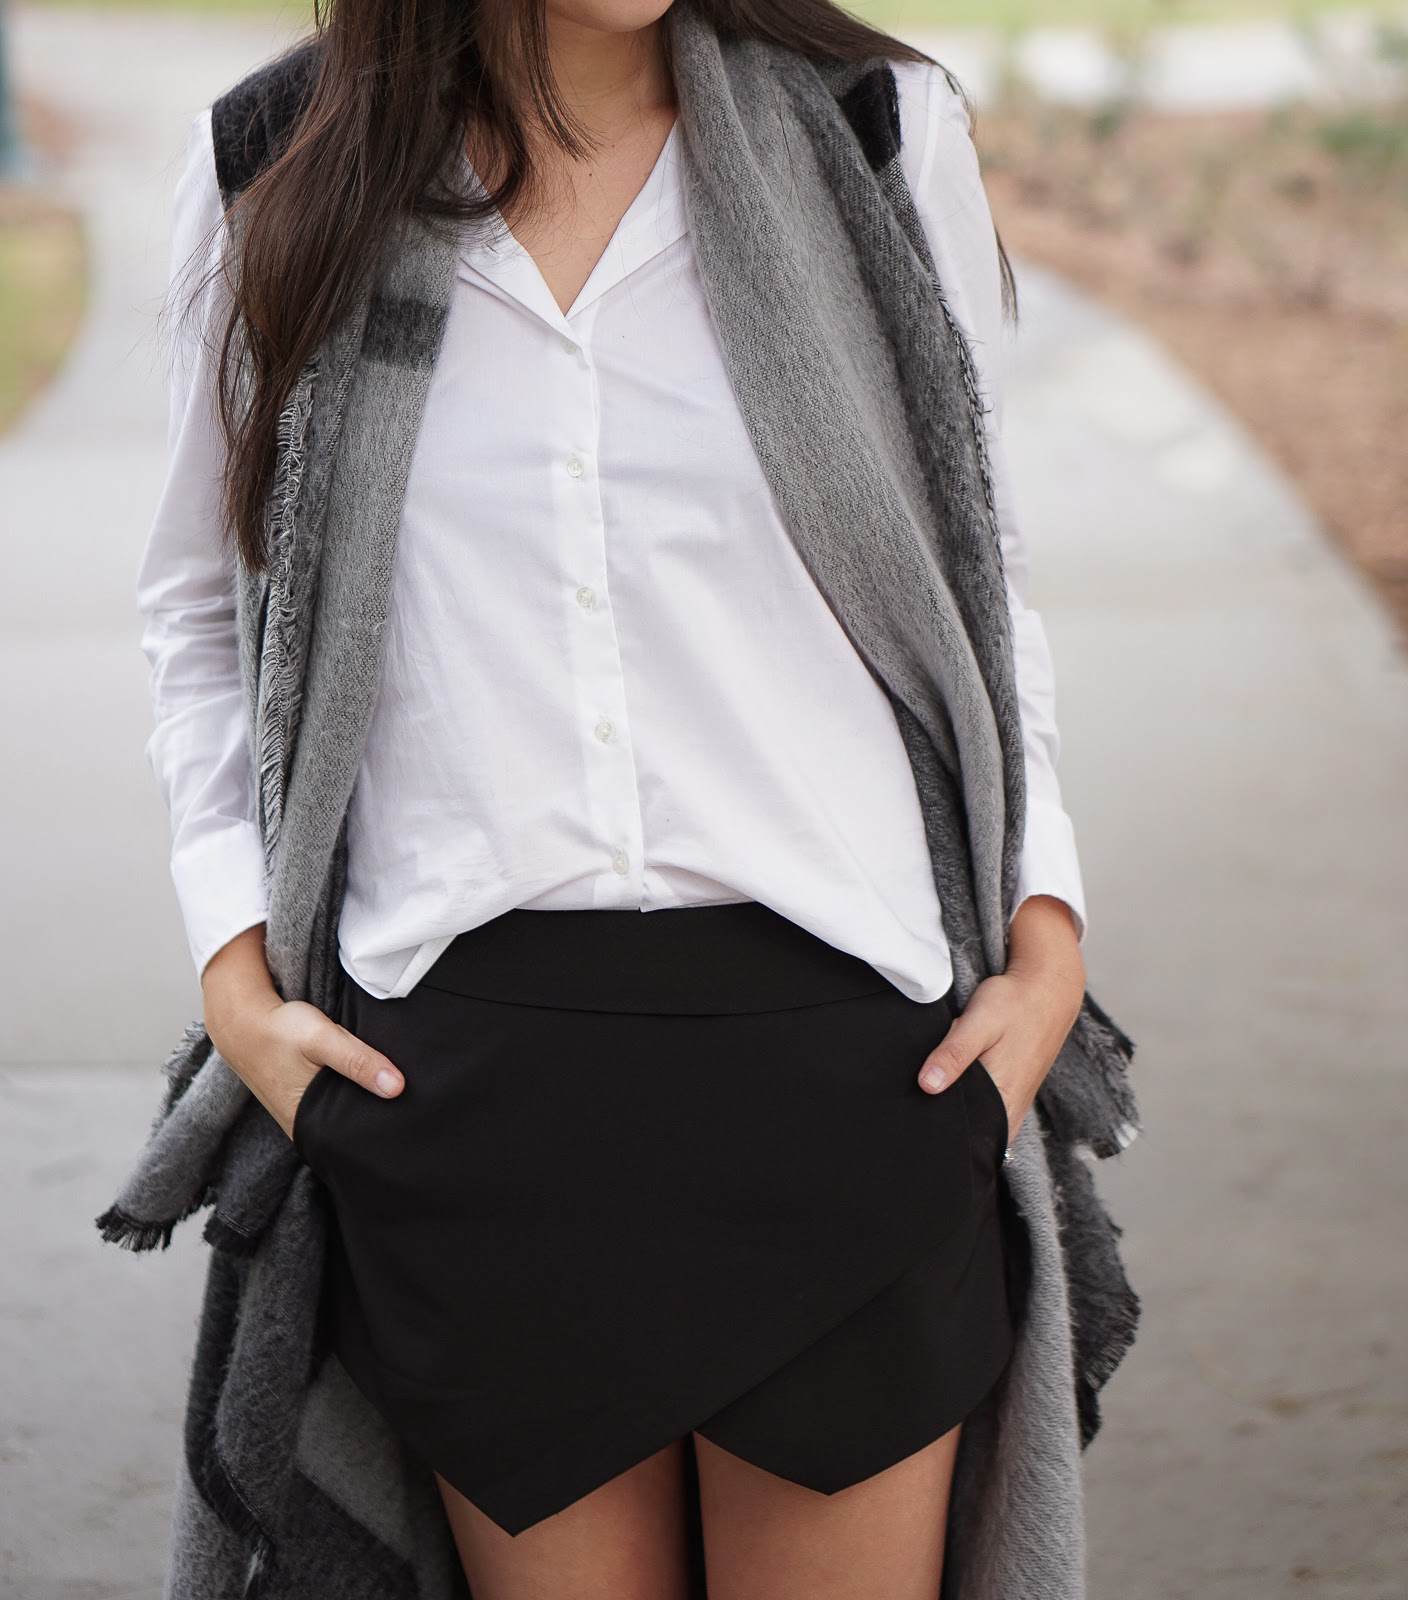 Black Skort, Vogue Footwear Looking Sharp Flats, looking sharp Flats, Vogue Footwear shoes, Vogue Footwear Flats, Forever 21 Skort, Zara Asymmetrical Scarf Vest Poncho, Zara Grey Scarf, Joe Fresh White Blouse, Tuxedo Flats